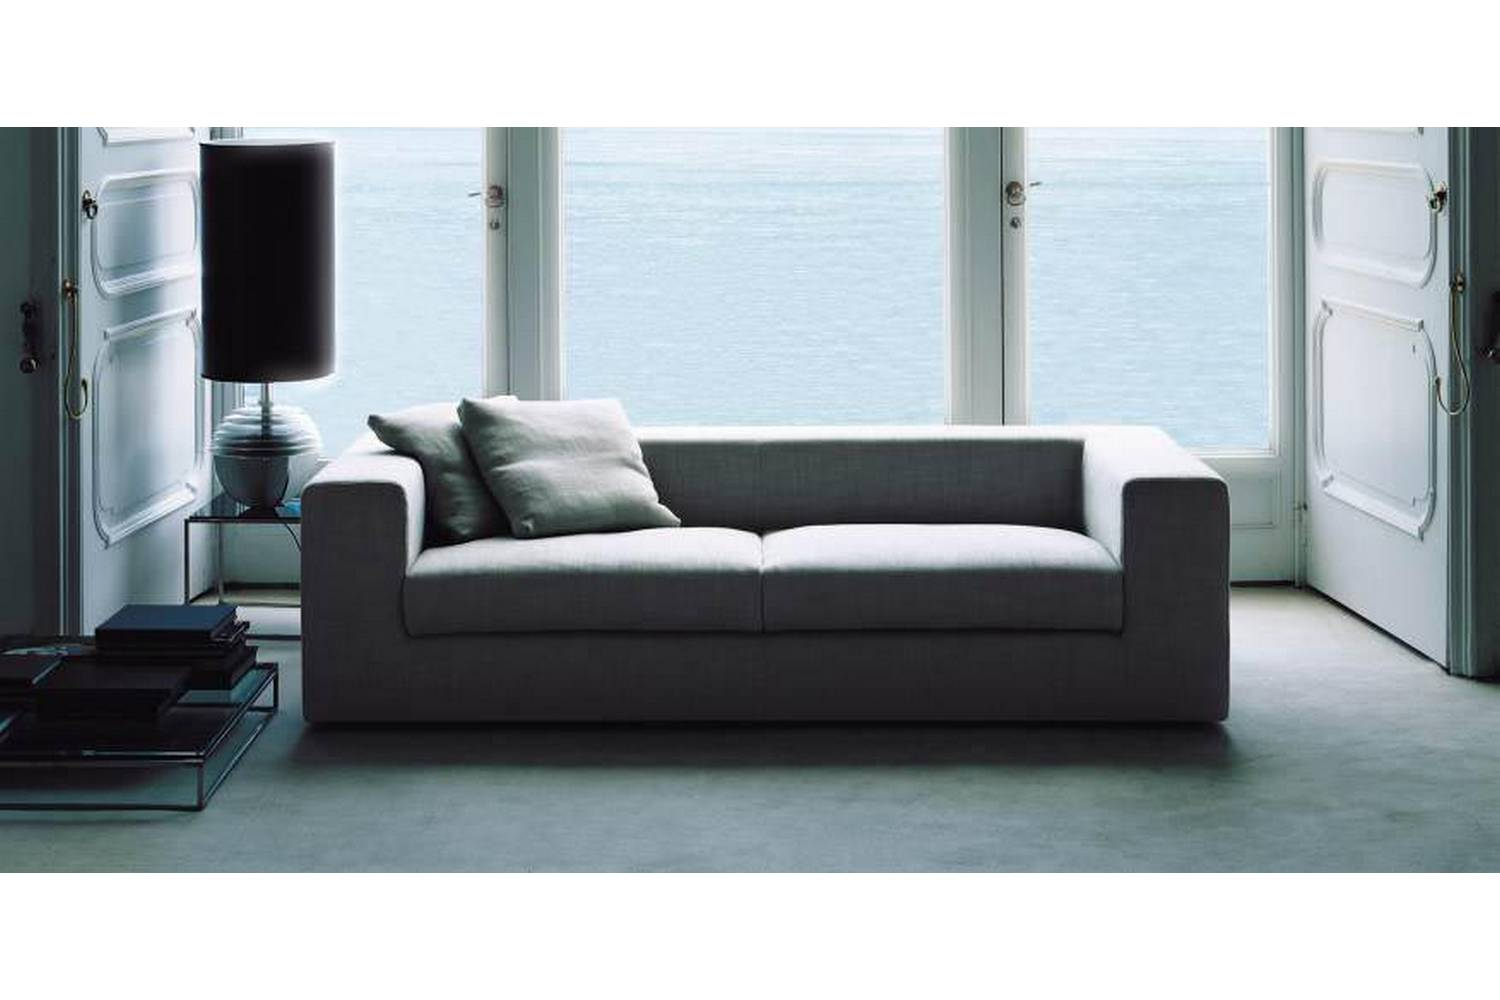 Living Divani The Wall Sofa Wall Sofa Bed By Piero Lissoni For Living Divani Space Furniture